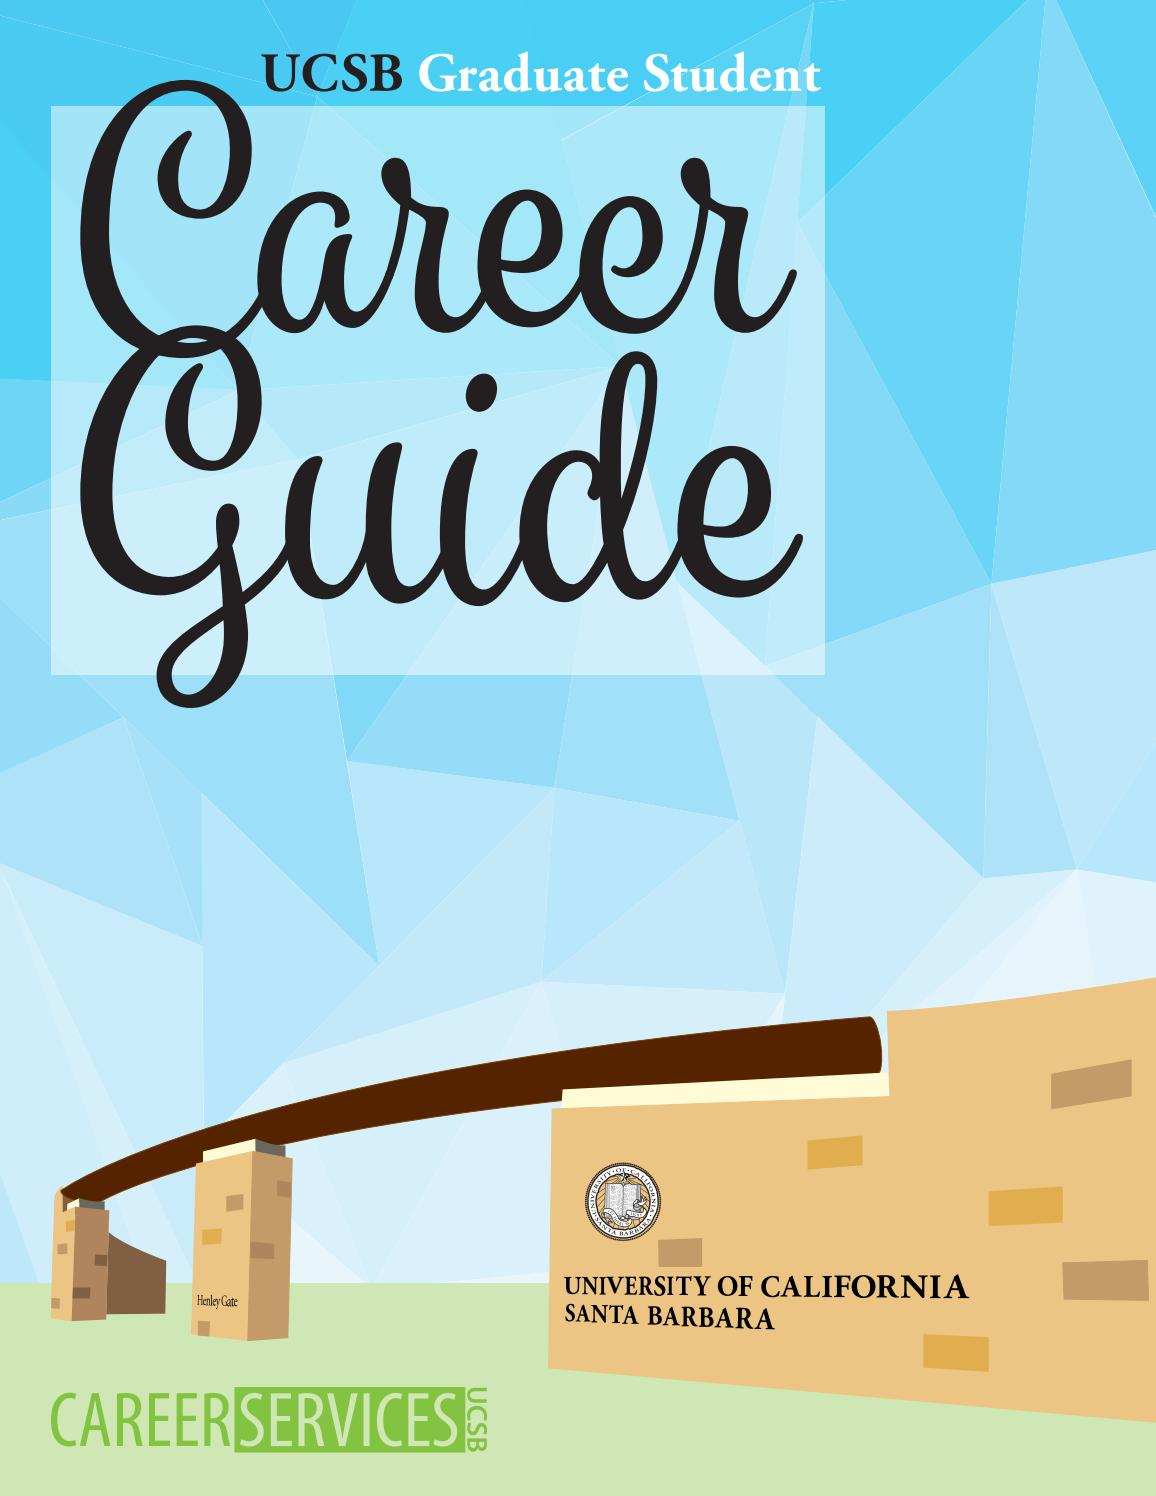 Academic Calendar Ucsb.Ucsb Graduate Student Career Guide 2017 By Ucsb Career Services Issuu